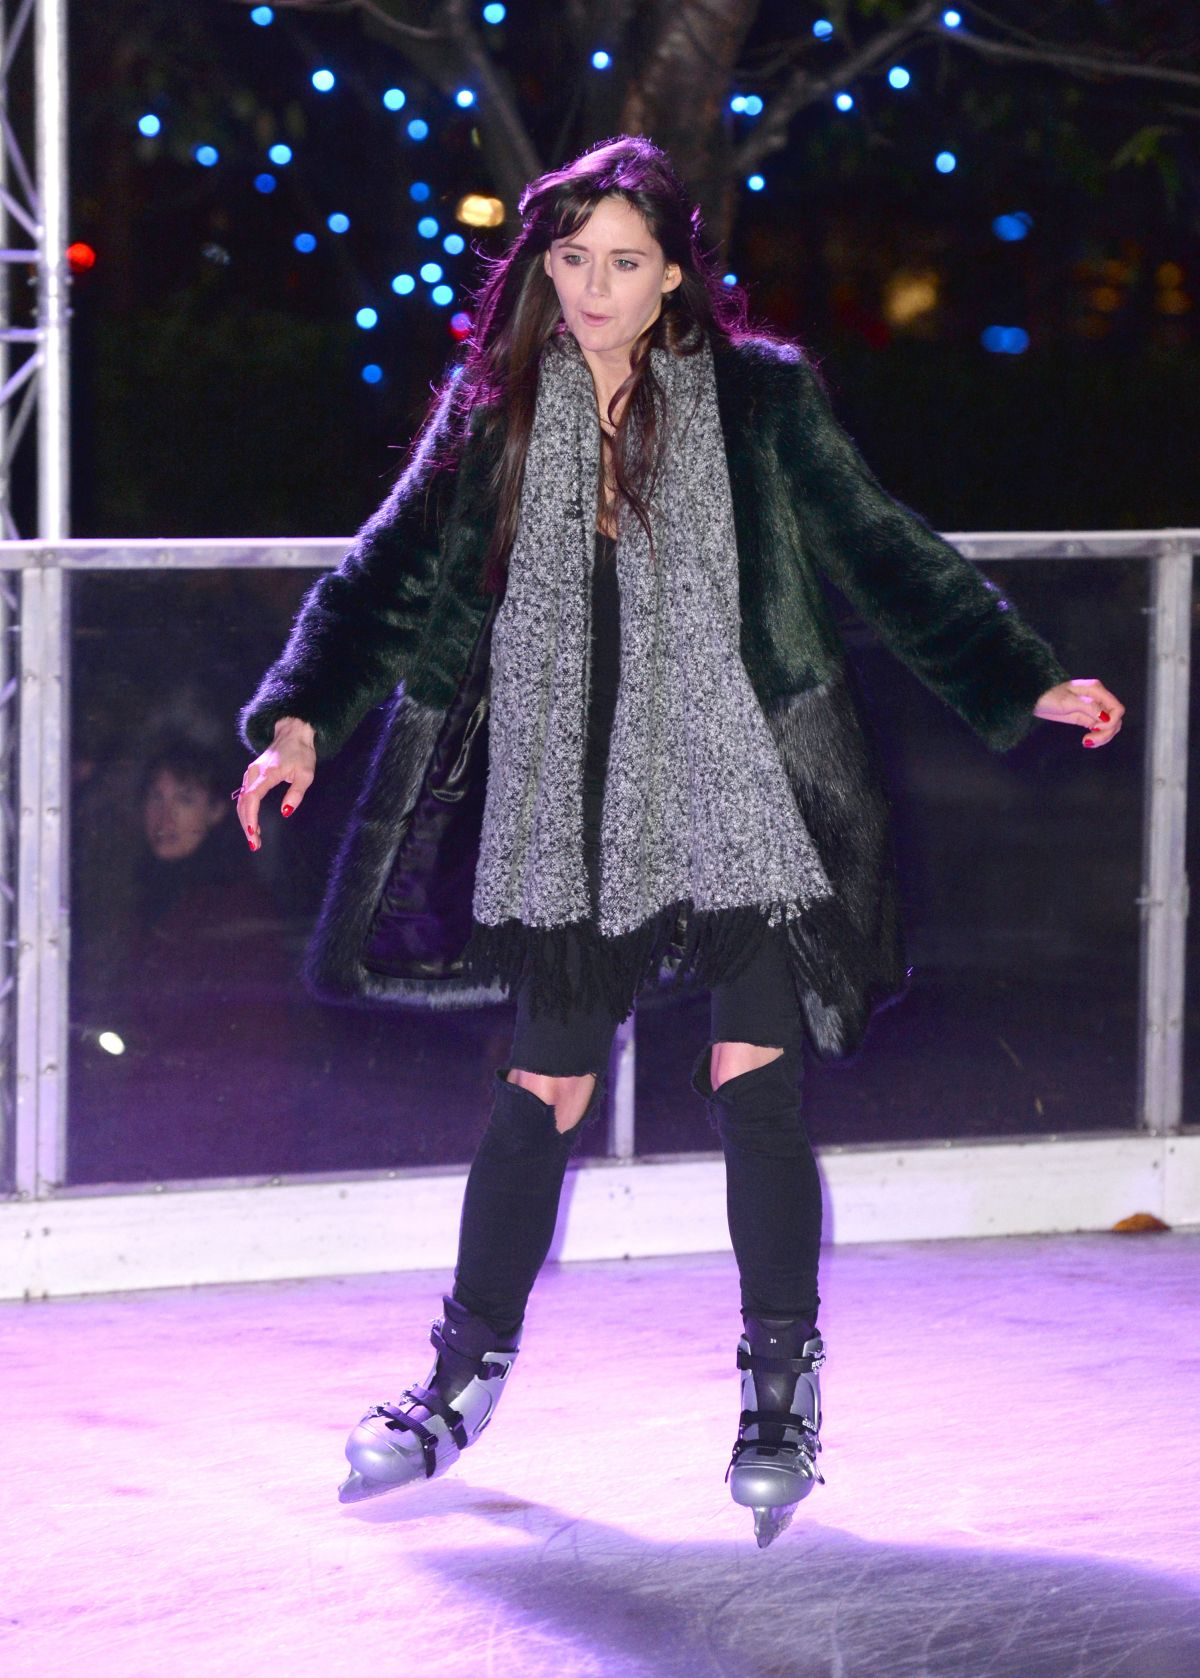 LILAH PARSONS at Coca Cola London Eye Frostival Eyeskate in London 11/18/2015